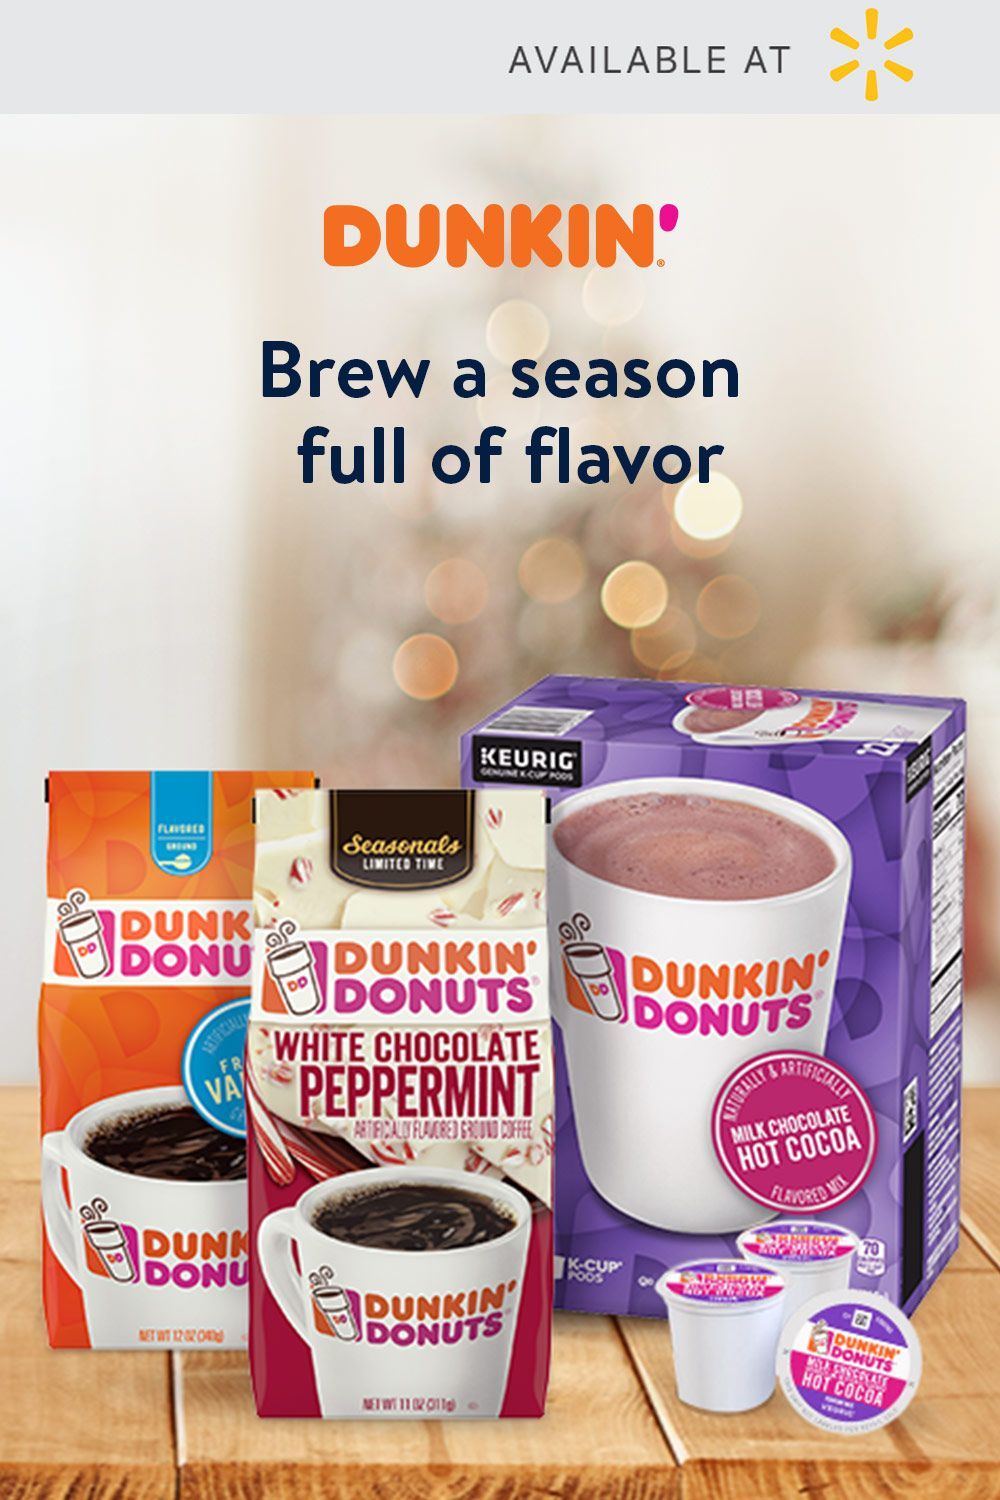 Sip holiday happiness with Dunkin'. Shop now & brew a